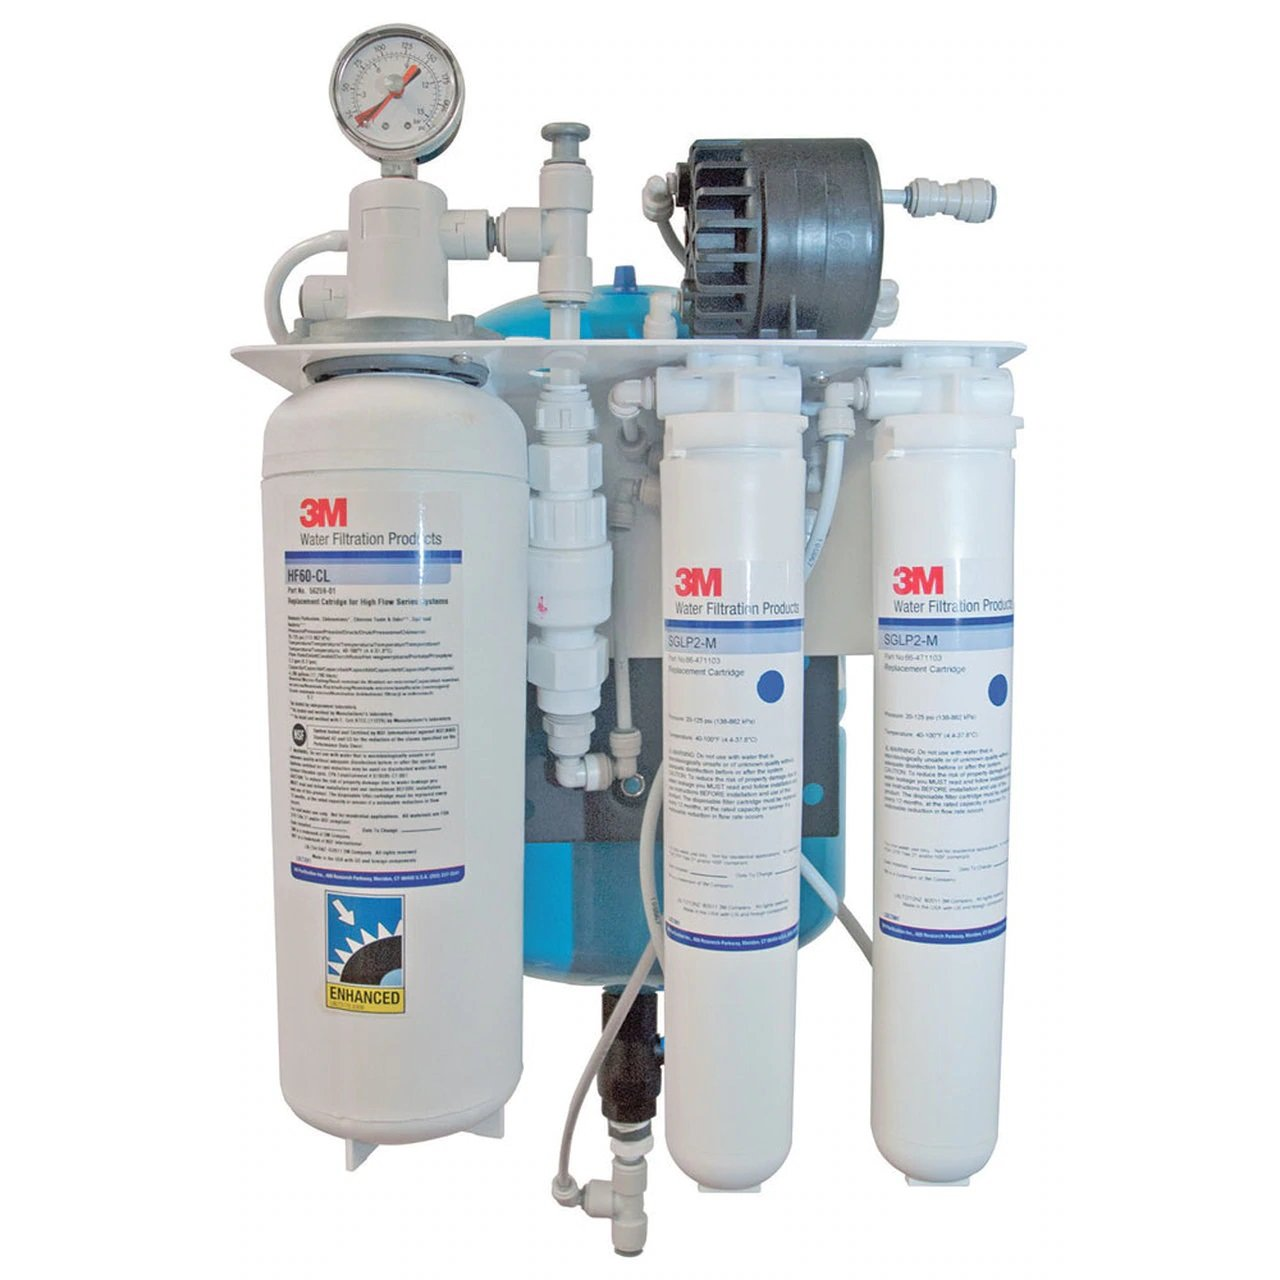 3M SGLP200-CL Reverse Osmosis Filtration System